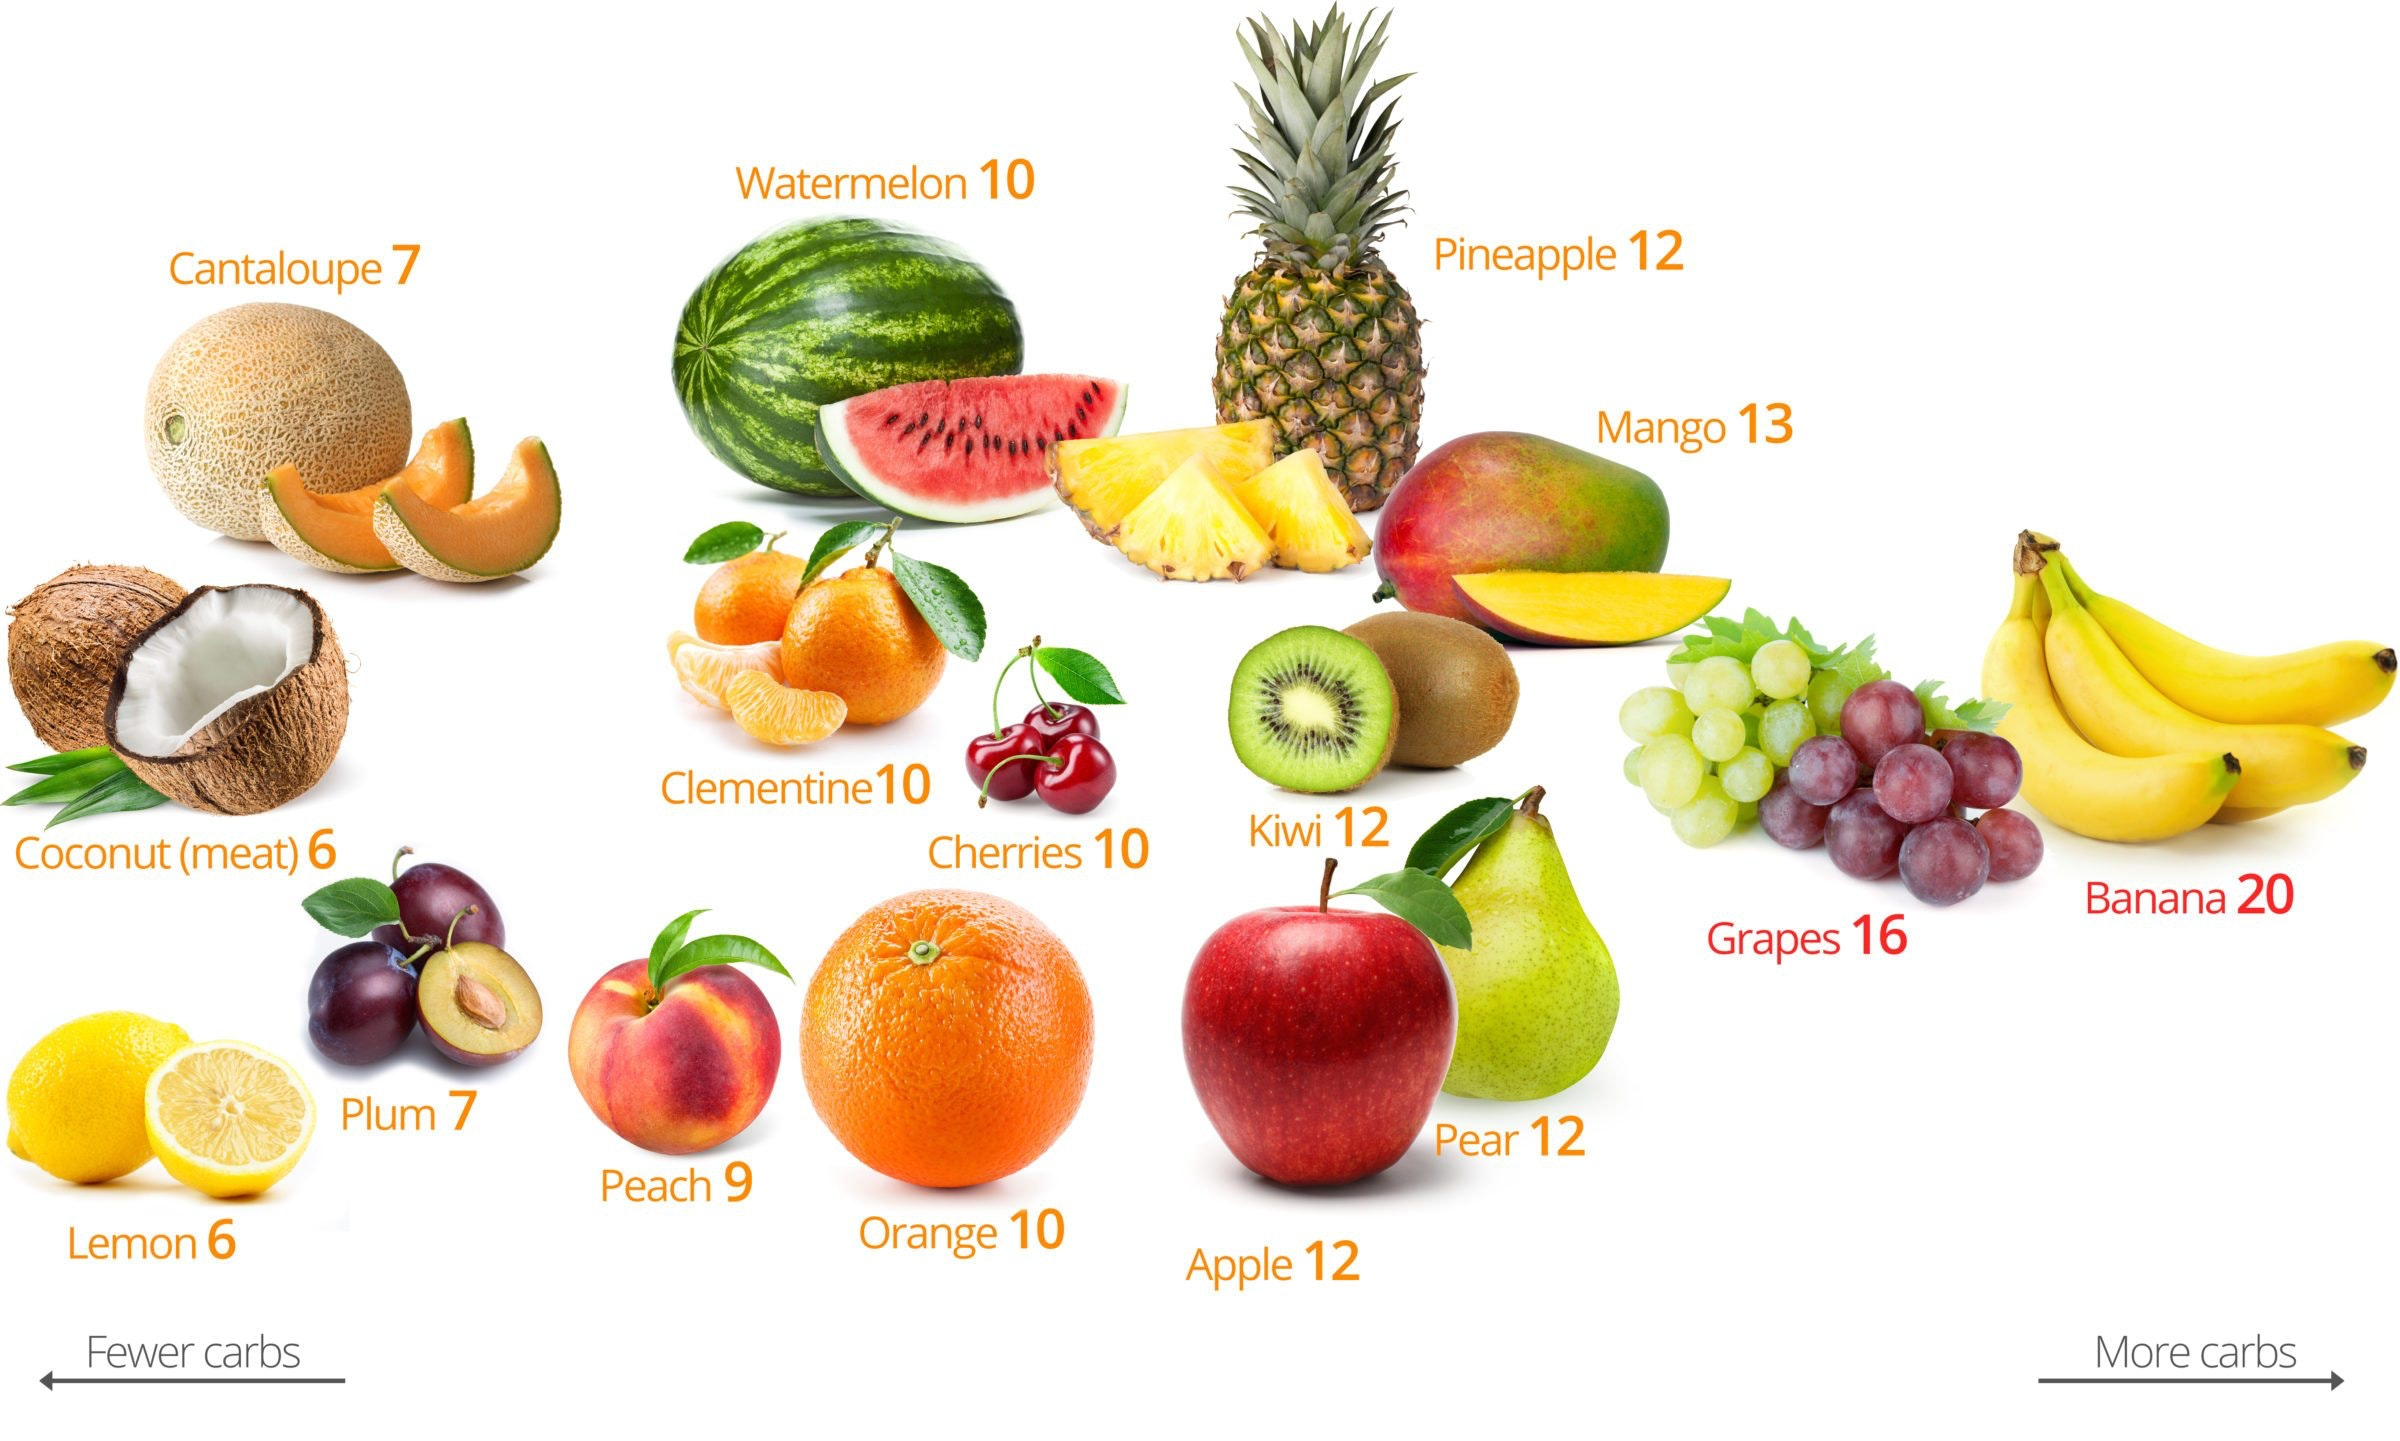 picture 20 Foods with 20 Grams of Sugar